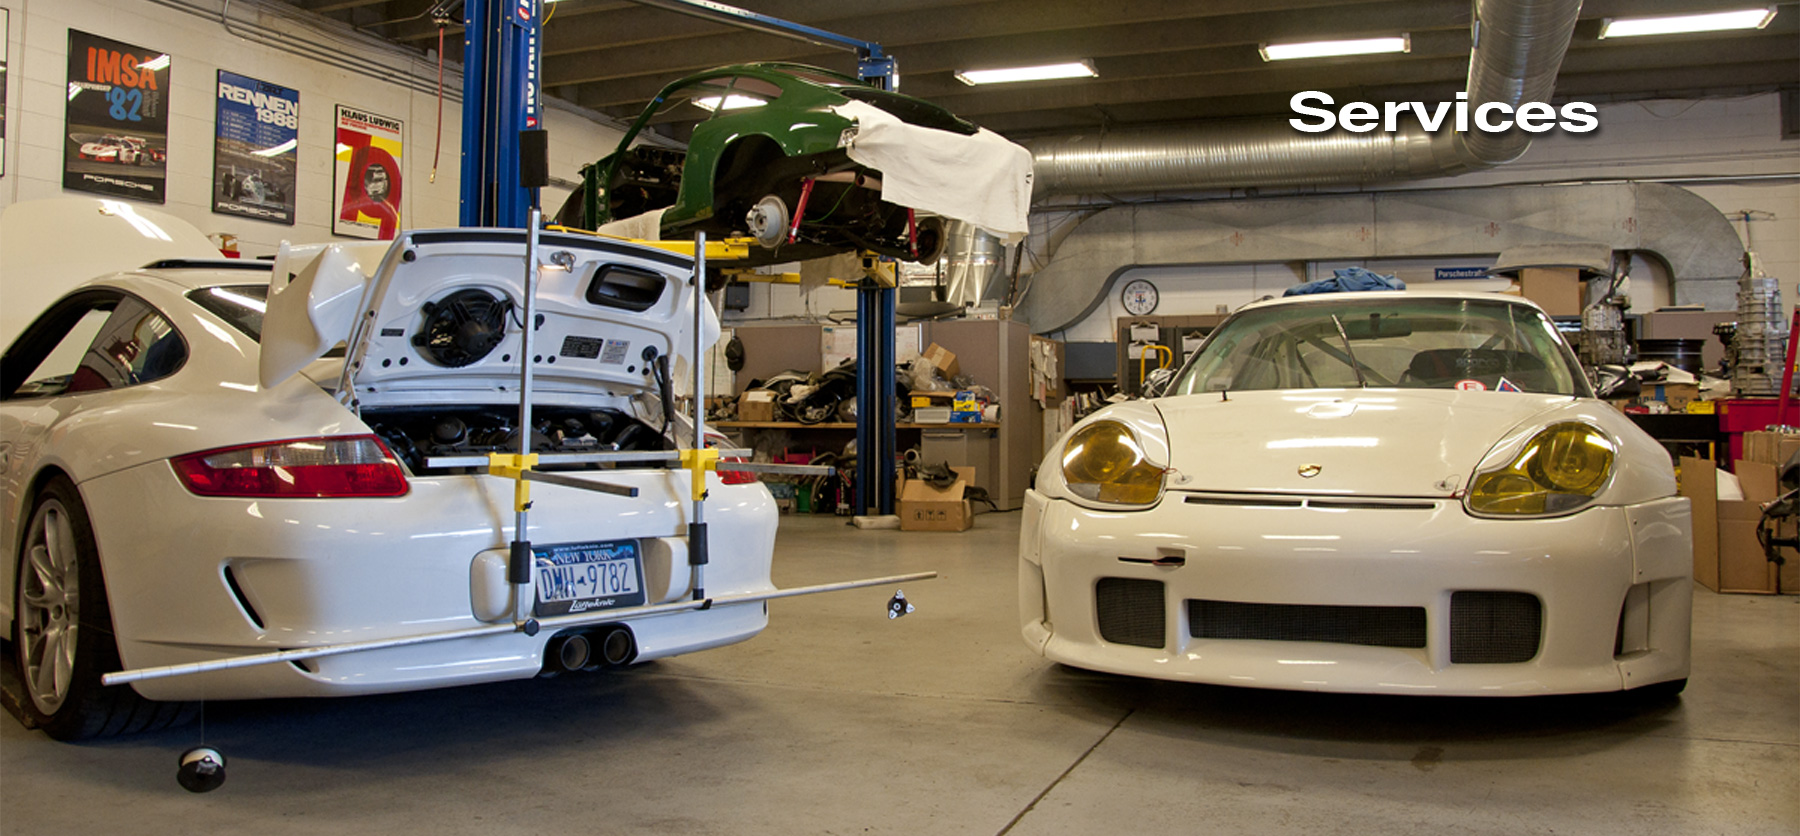 Lüfteknic services header image showing a 997 GT3, 912 and 996 GT3 RSR being worked on inside the shop.